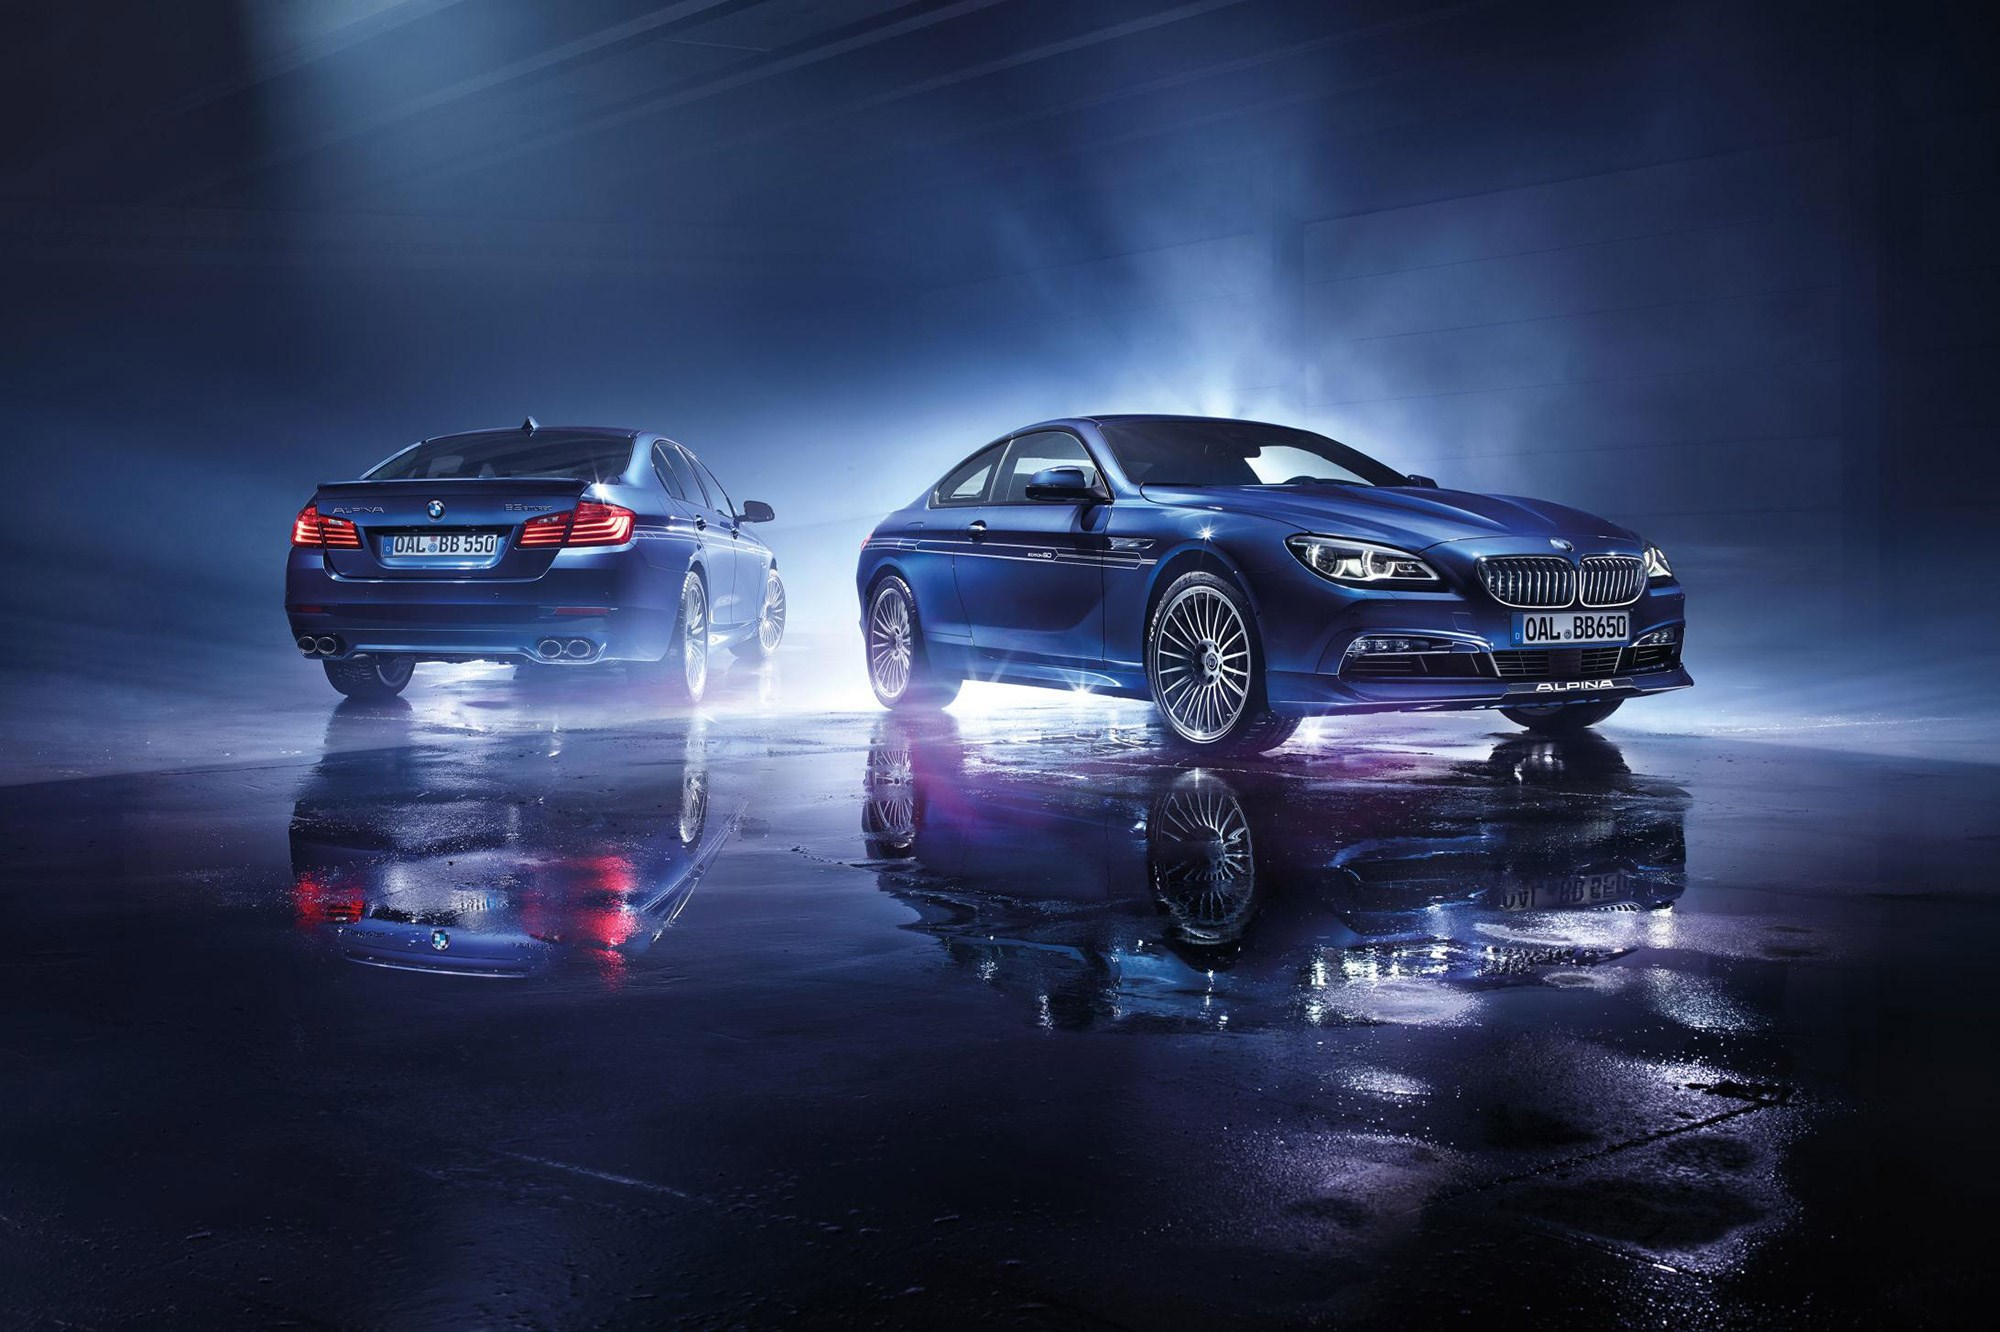 Alpina Blows Out Candles With New BMW B And B BiTurbo CAR - Bmw alpina b6 biturbo price